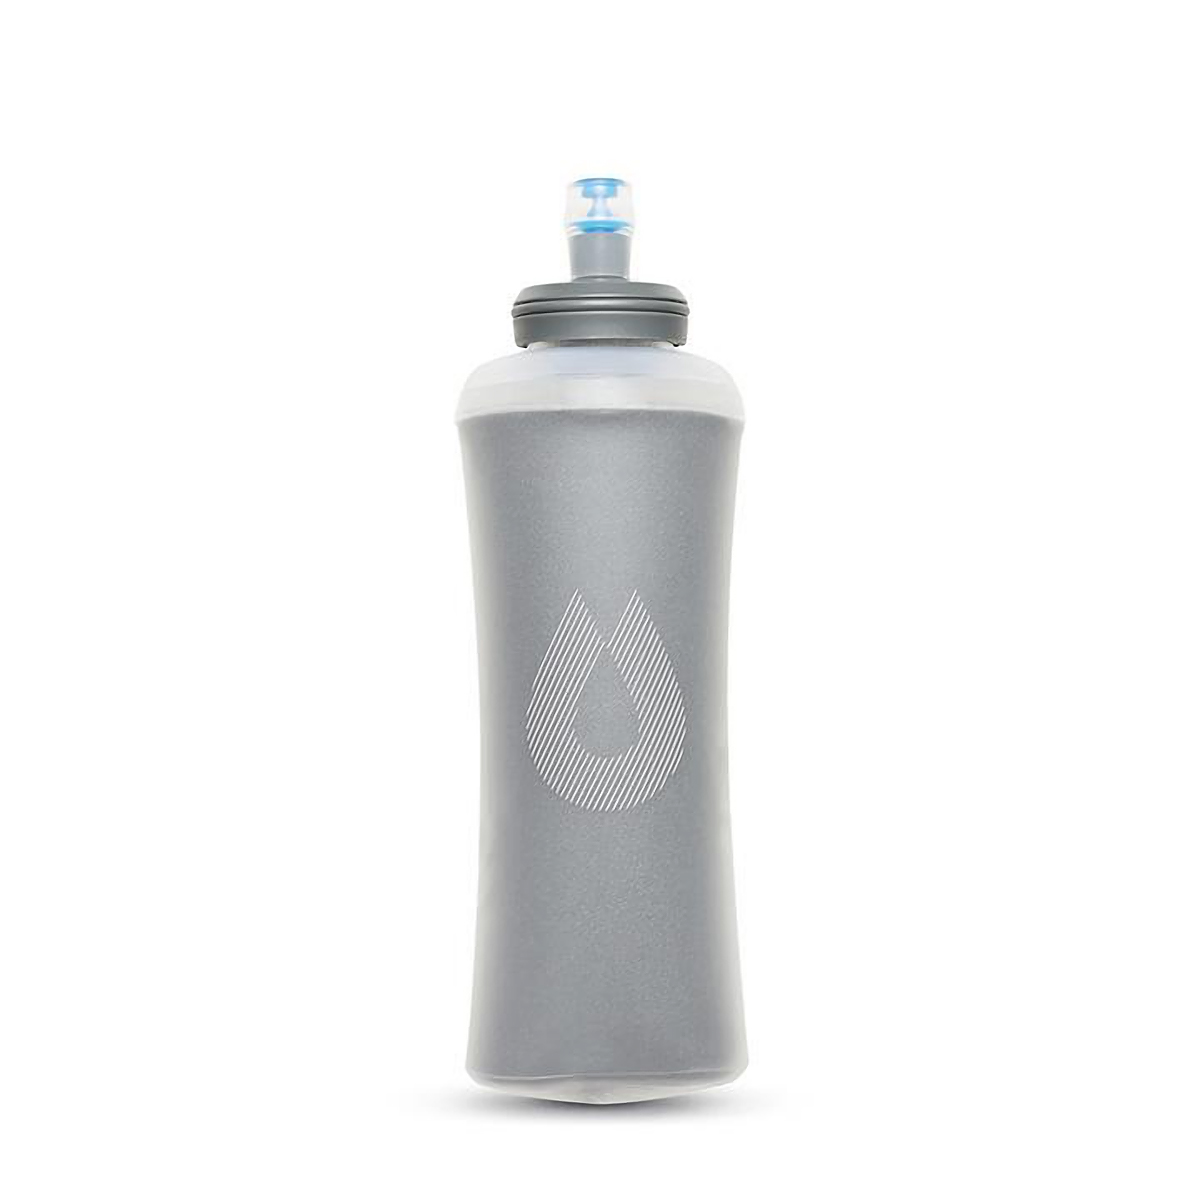 Hydrapak UltraFlask IT 500 mL Insulated Water Bottle - Color: Grey - Size: One Size, Grey, large, image 1